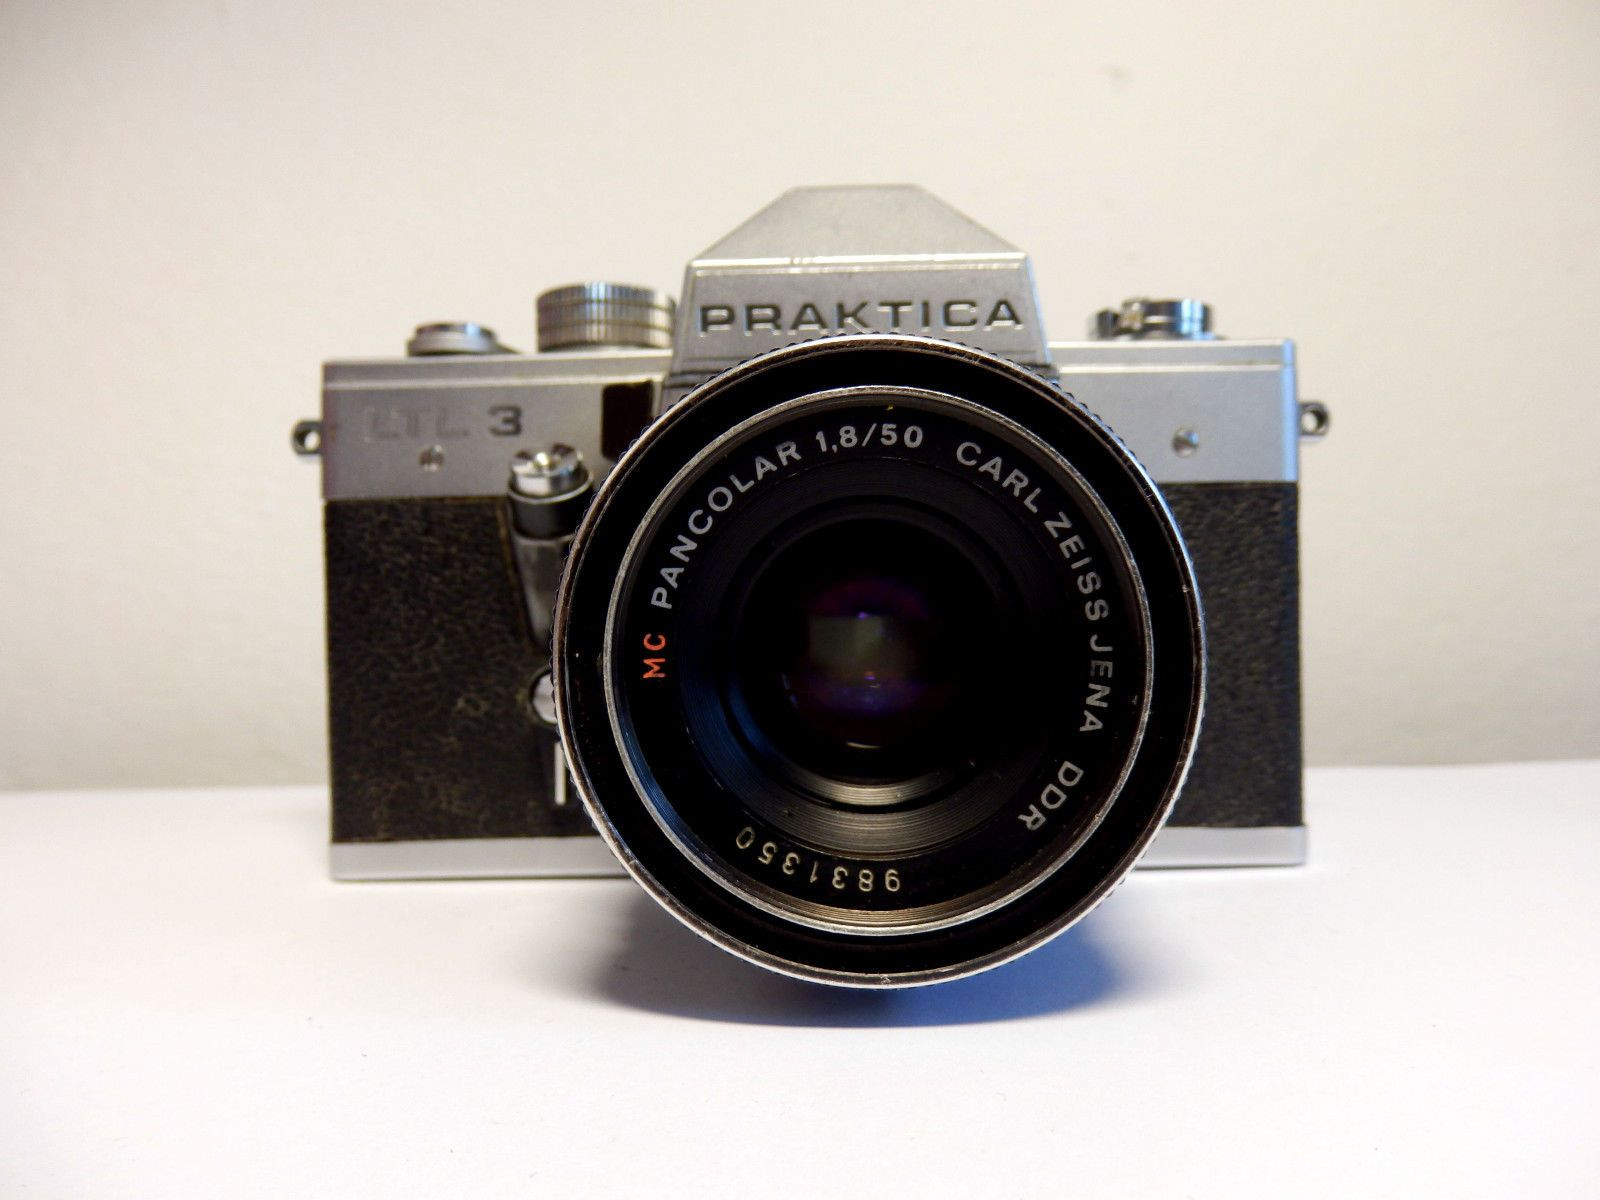 Vtg ddr praktica ltl3 slr 35mm camera with pancolar mc zeiss lens